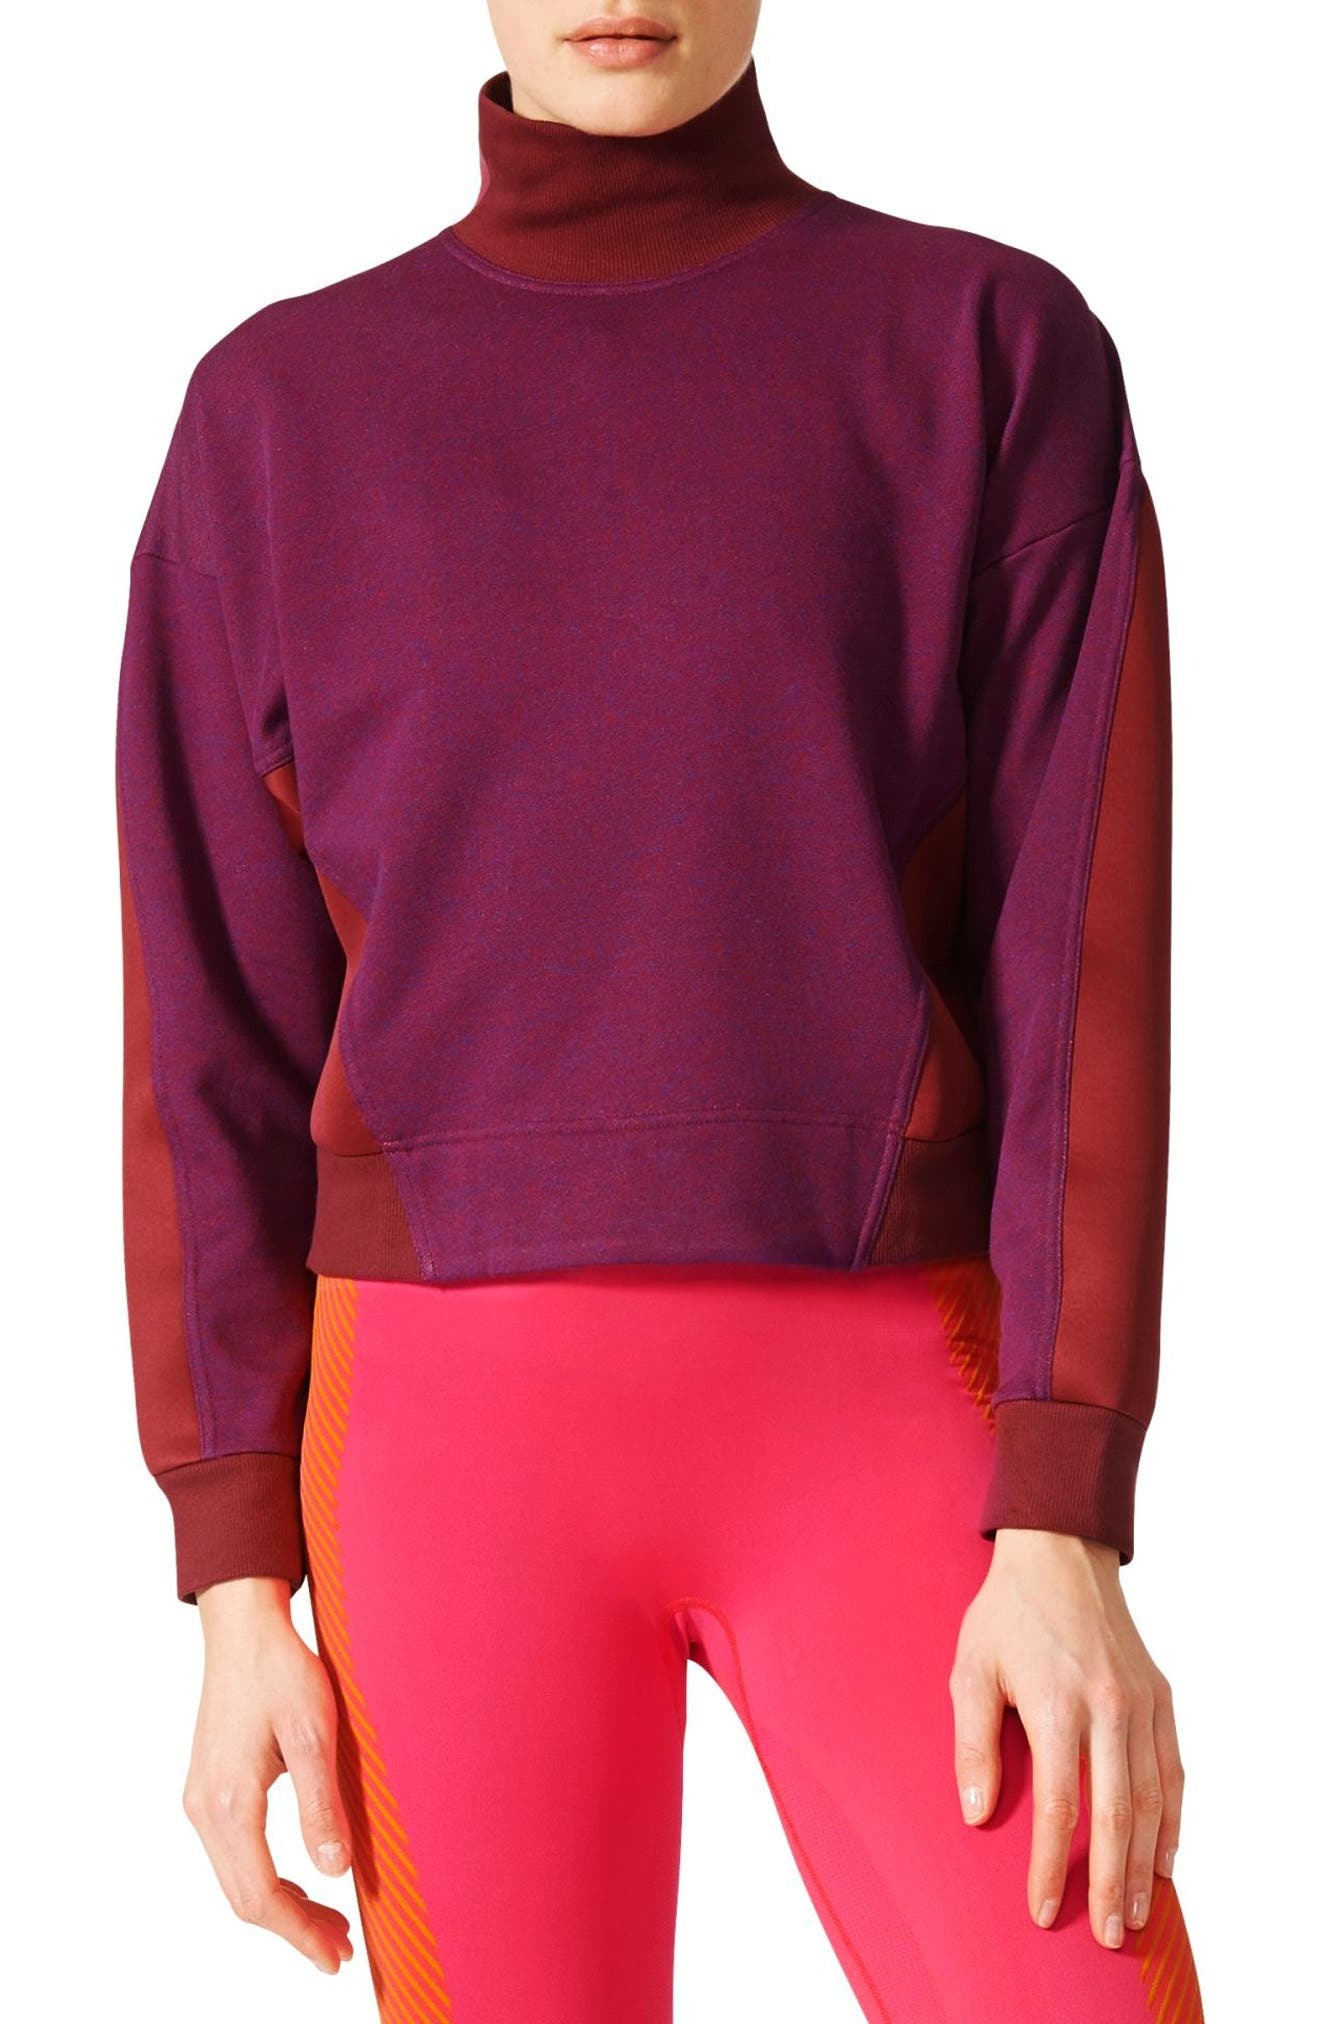 adidas by Stella McCartney Yoga Turtleneck Sweatshirt